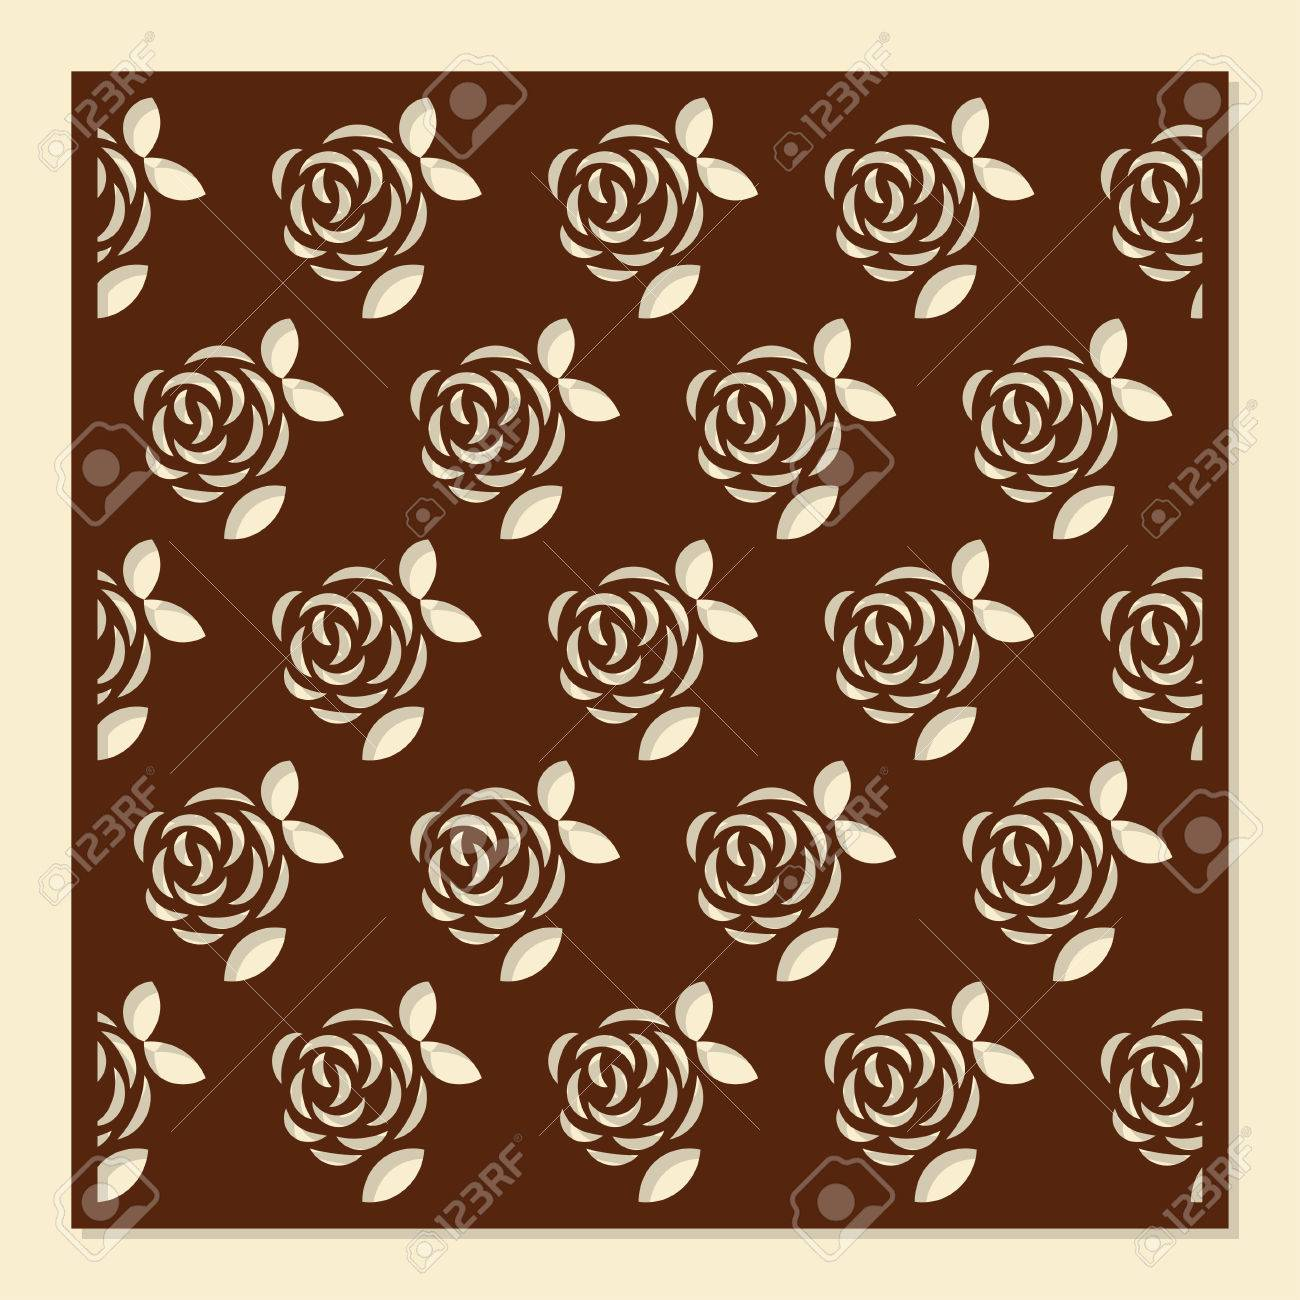 Rose Flower Decorative Pattern For Laser Cutting Vector